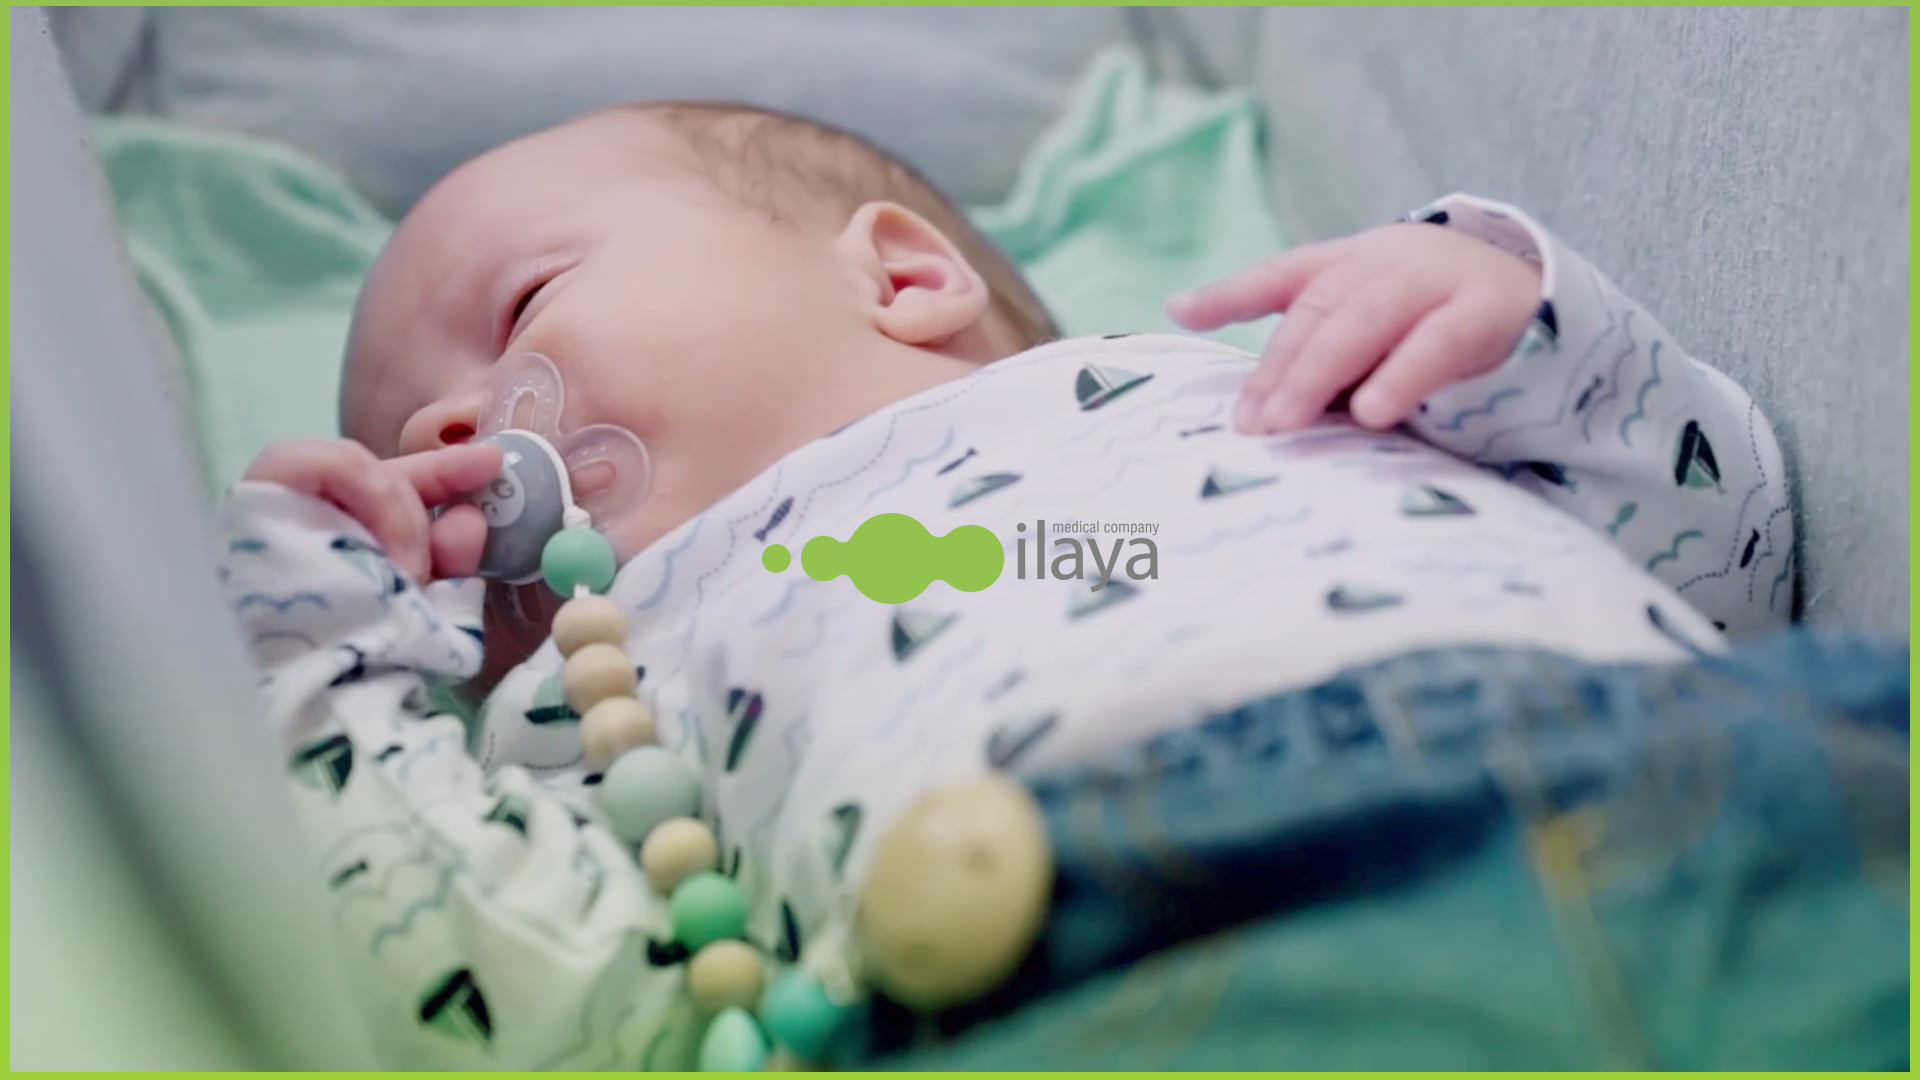 Baby born through ilaya Fertility Clinic